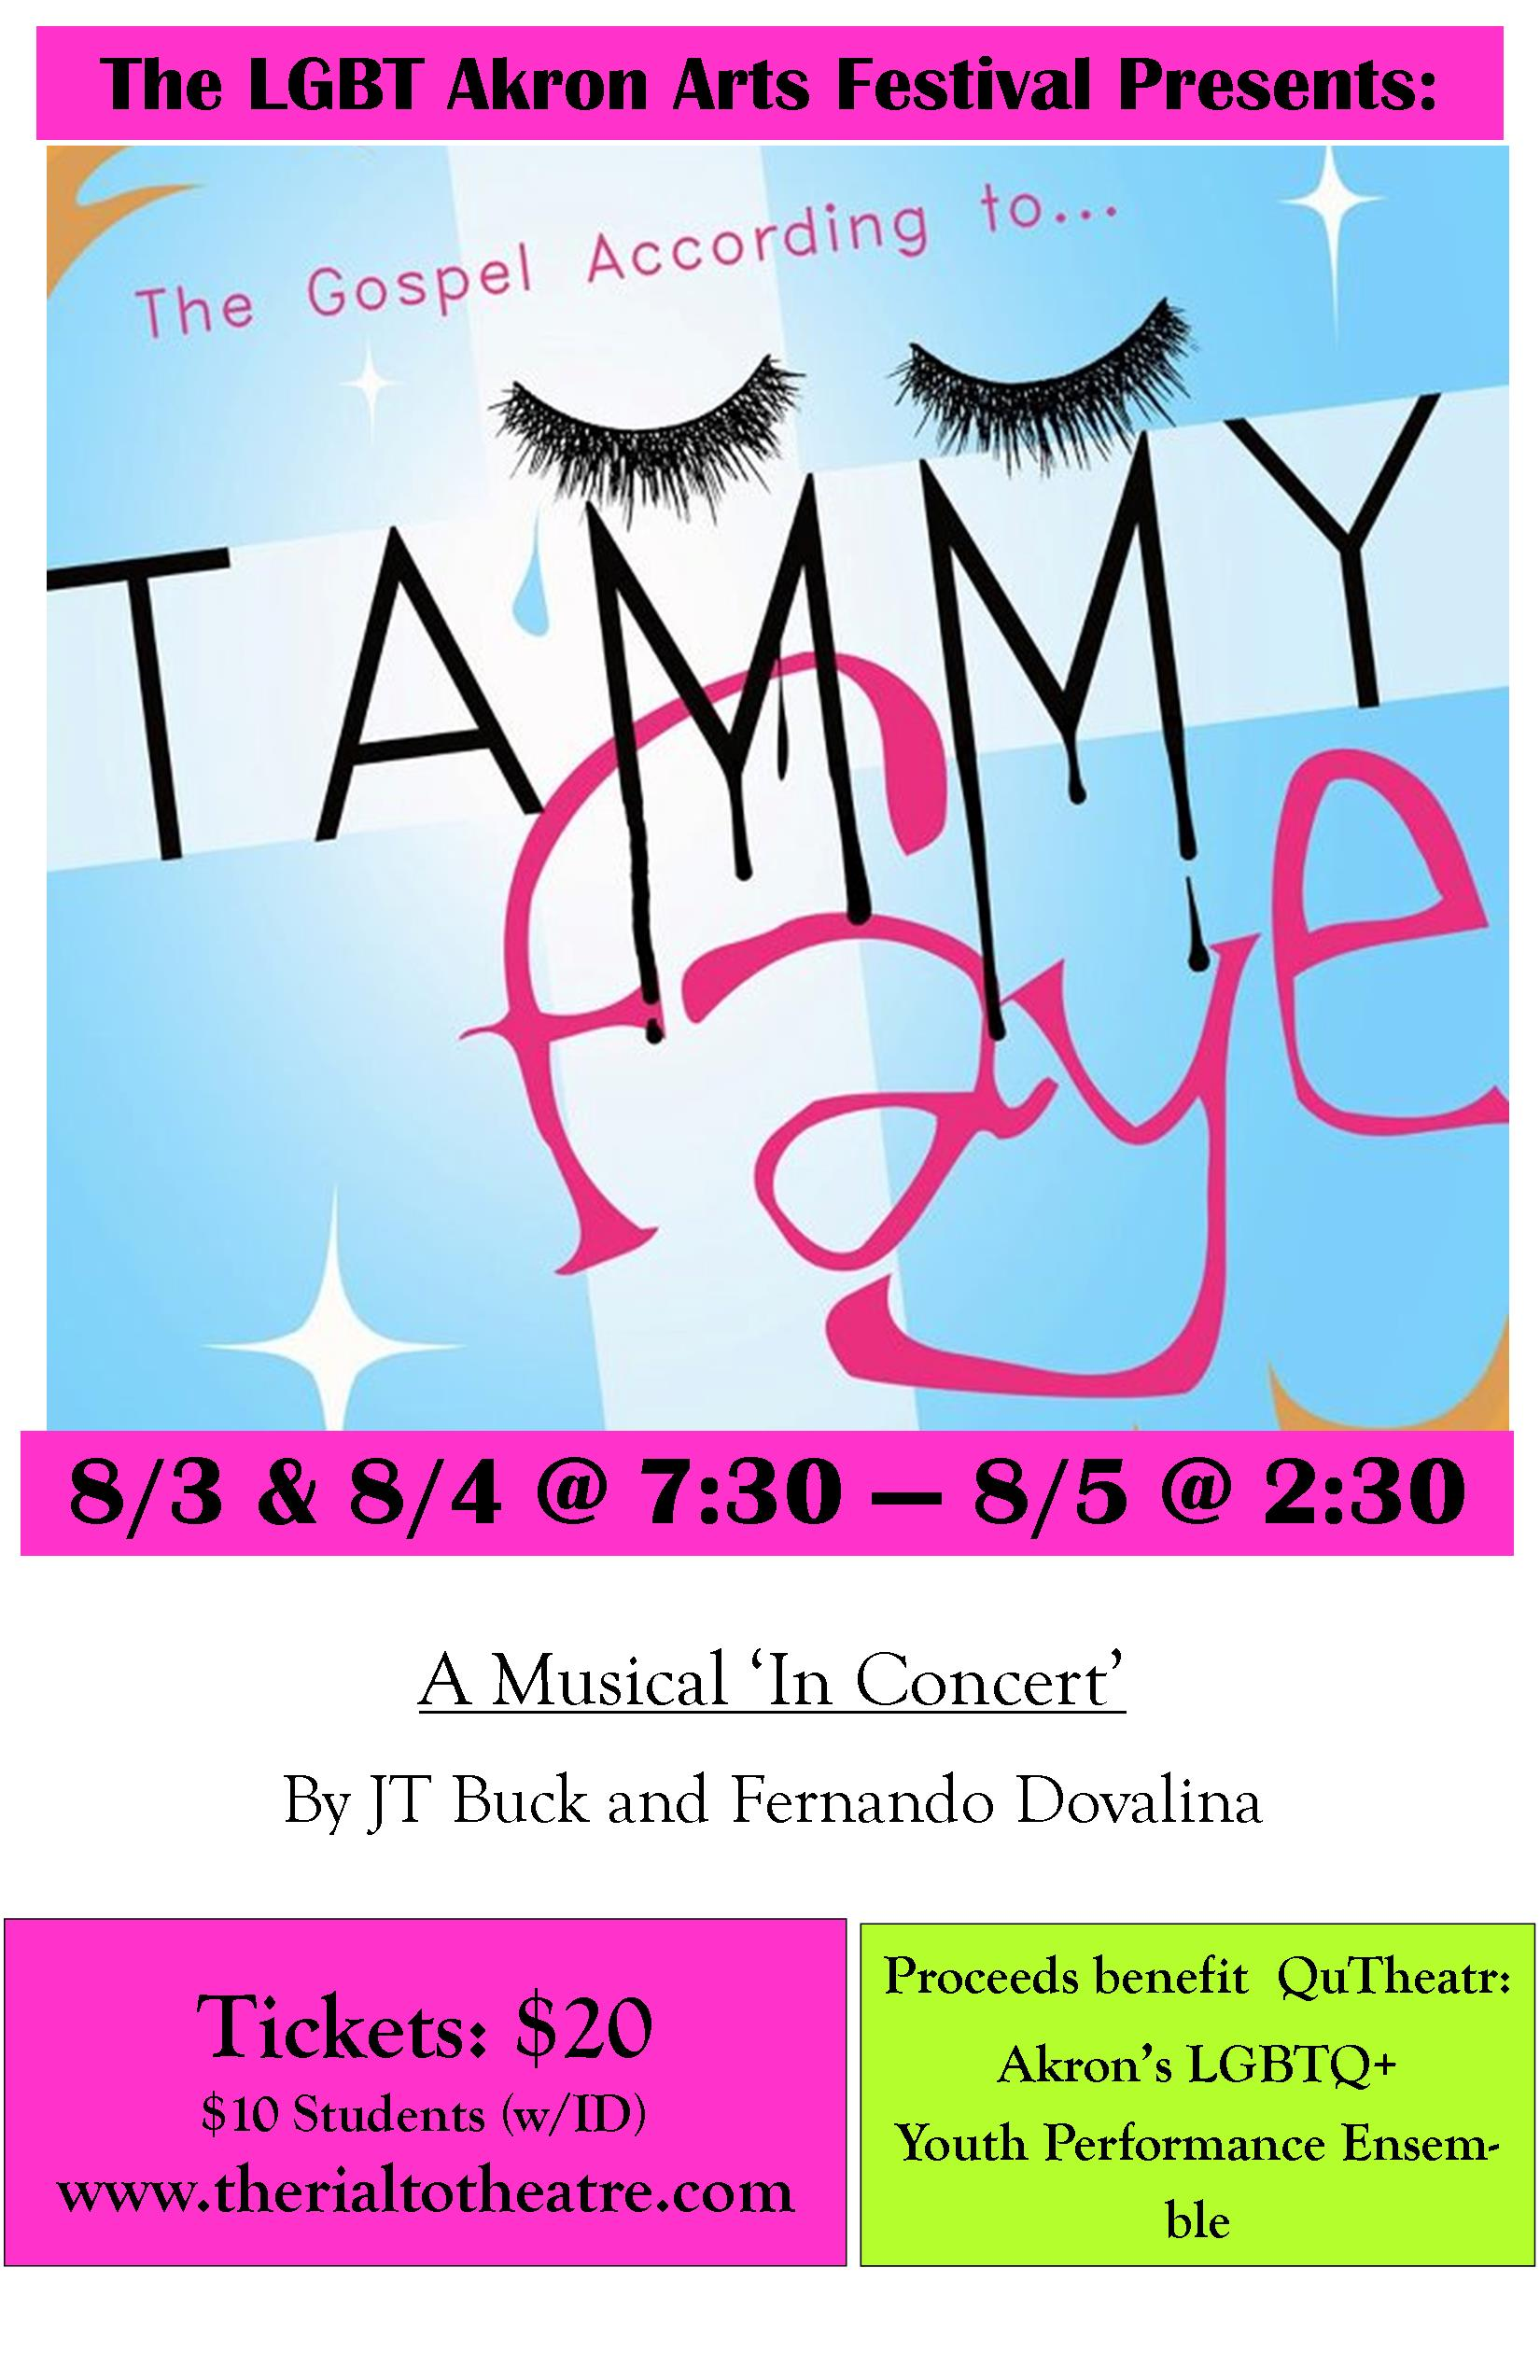 The LGBT Akron Arts Festival Presents:  The Gospel According to Tammy Faye  A Musical 'In Concert' by JT Buck and Fernando Dovalina  August 3rd, 4th, & 5th     Tickets:  $20 General Admission  $10 Students w/ ID     Proceeds benefit QuTheatr:  Akron's LGBTQ+  Youth Performance Ensemble